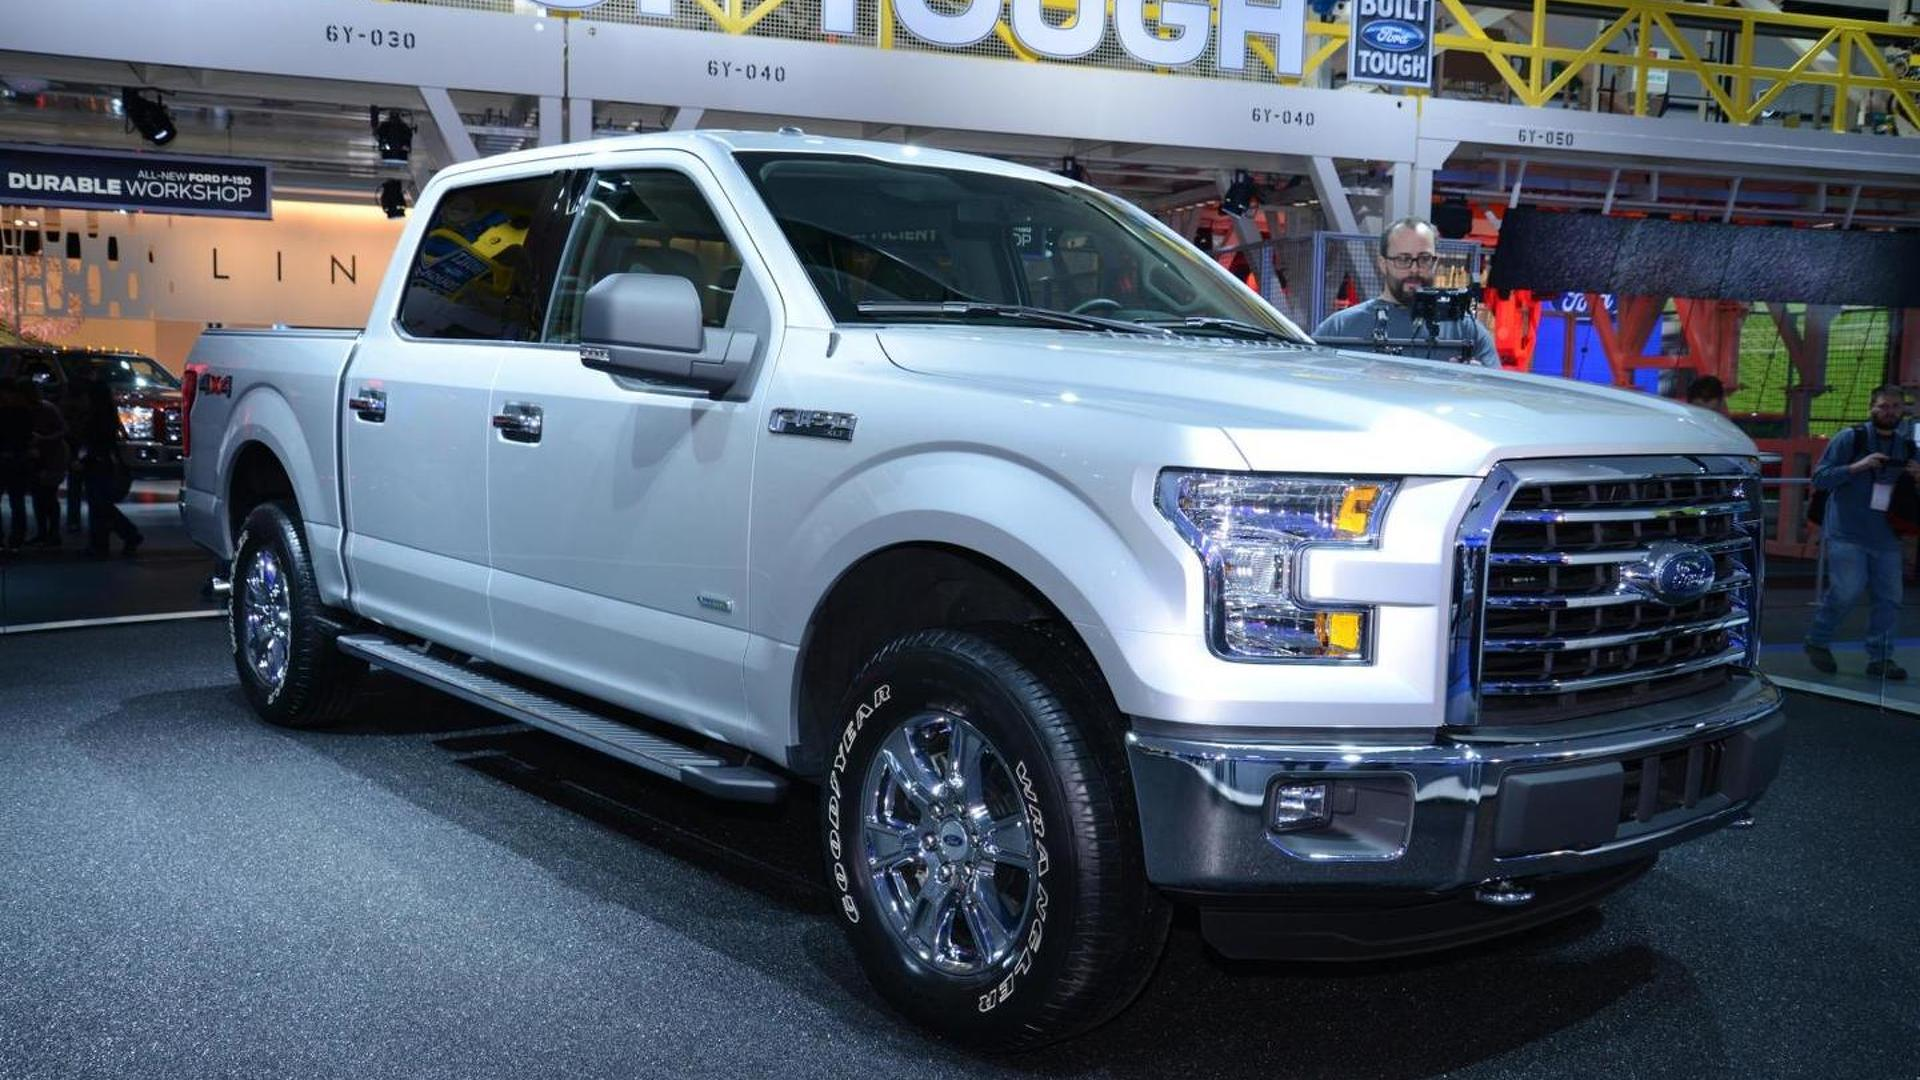 Aluminum-bodied 2015 Ford F-150 priced from 26,615 USD, only 395 USD more over 2014MY